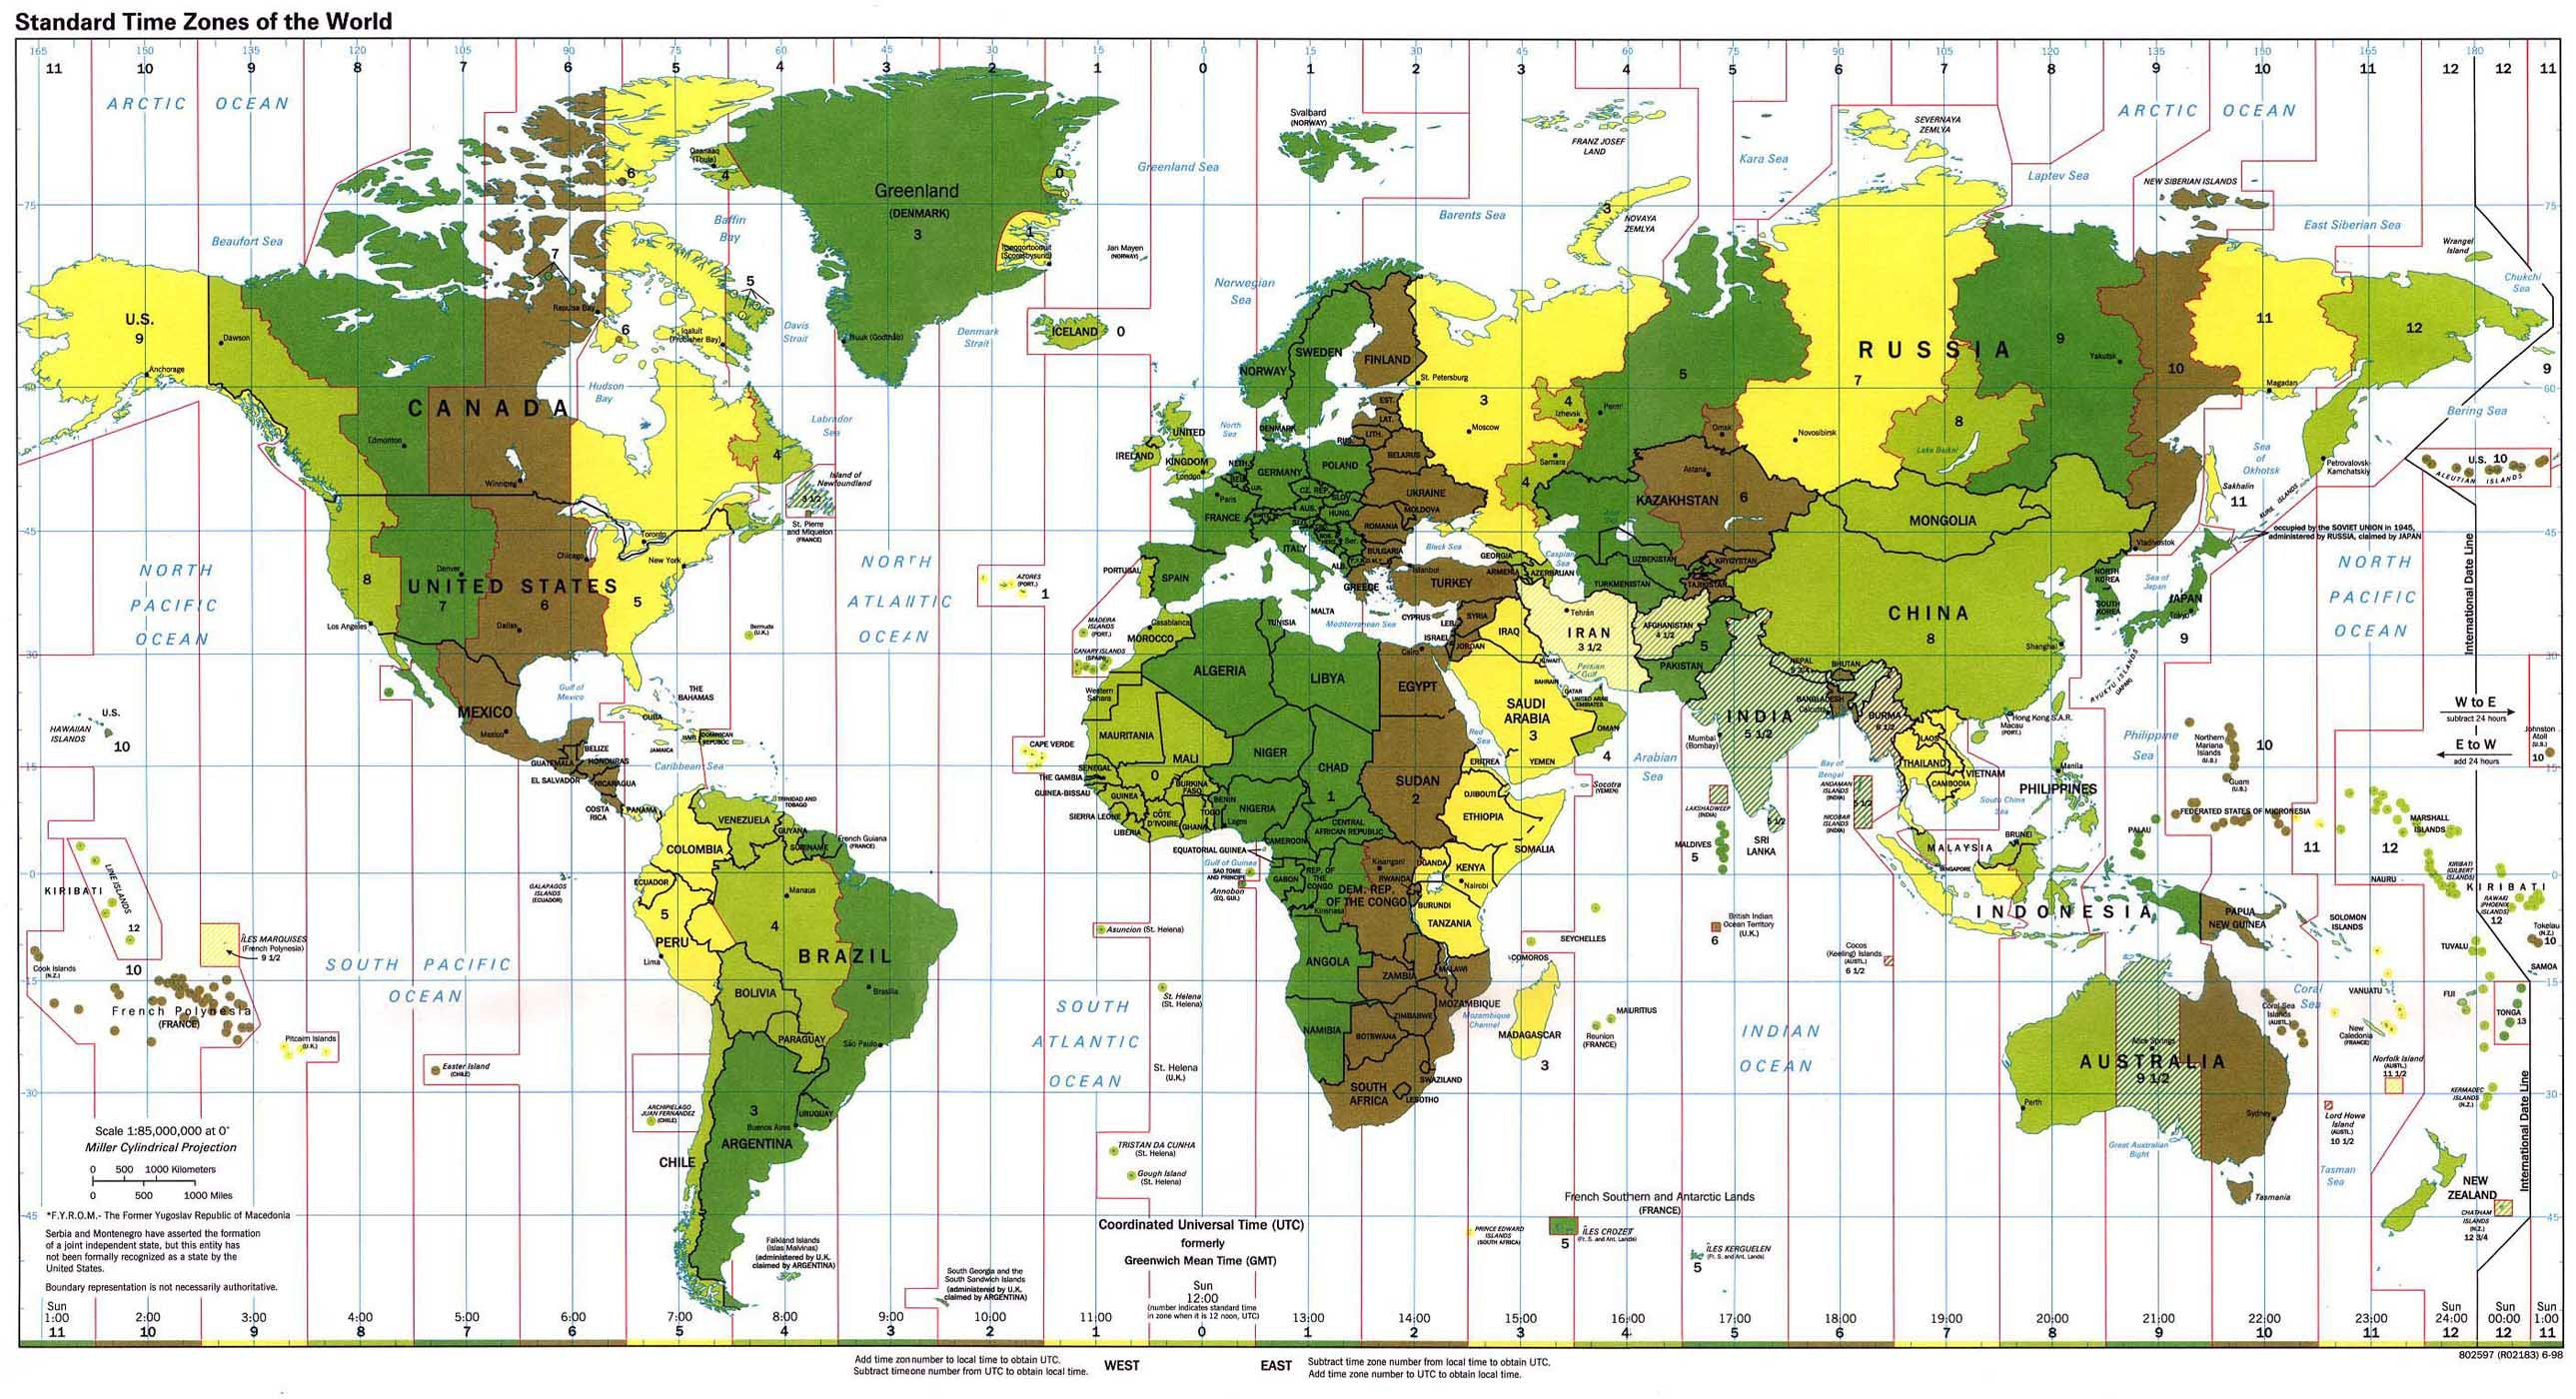 Pin by geografia universaltb on cartografa pinterest world clock size 9 mb interactive world map selected theme or custom theme in the settings window gumiabroncs Image collections